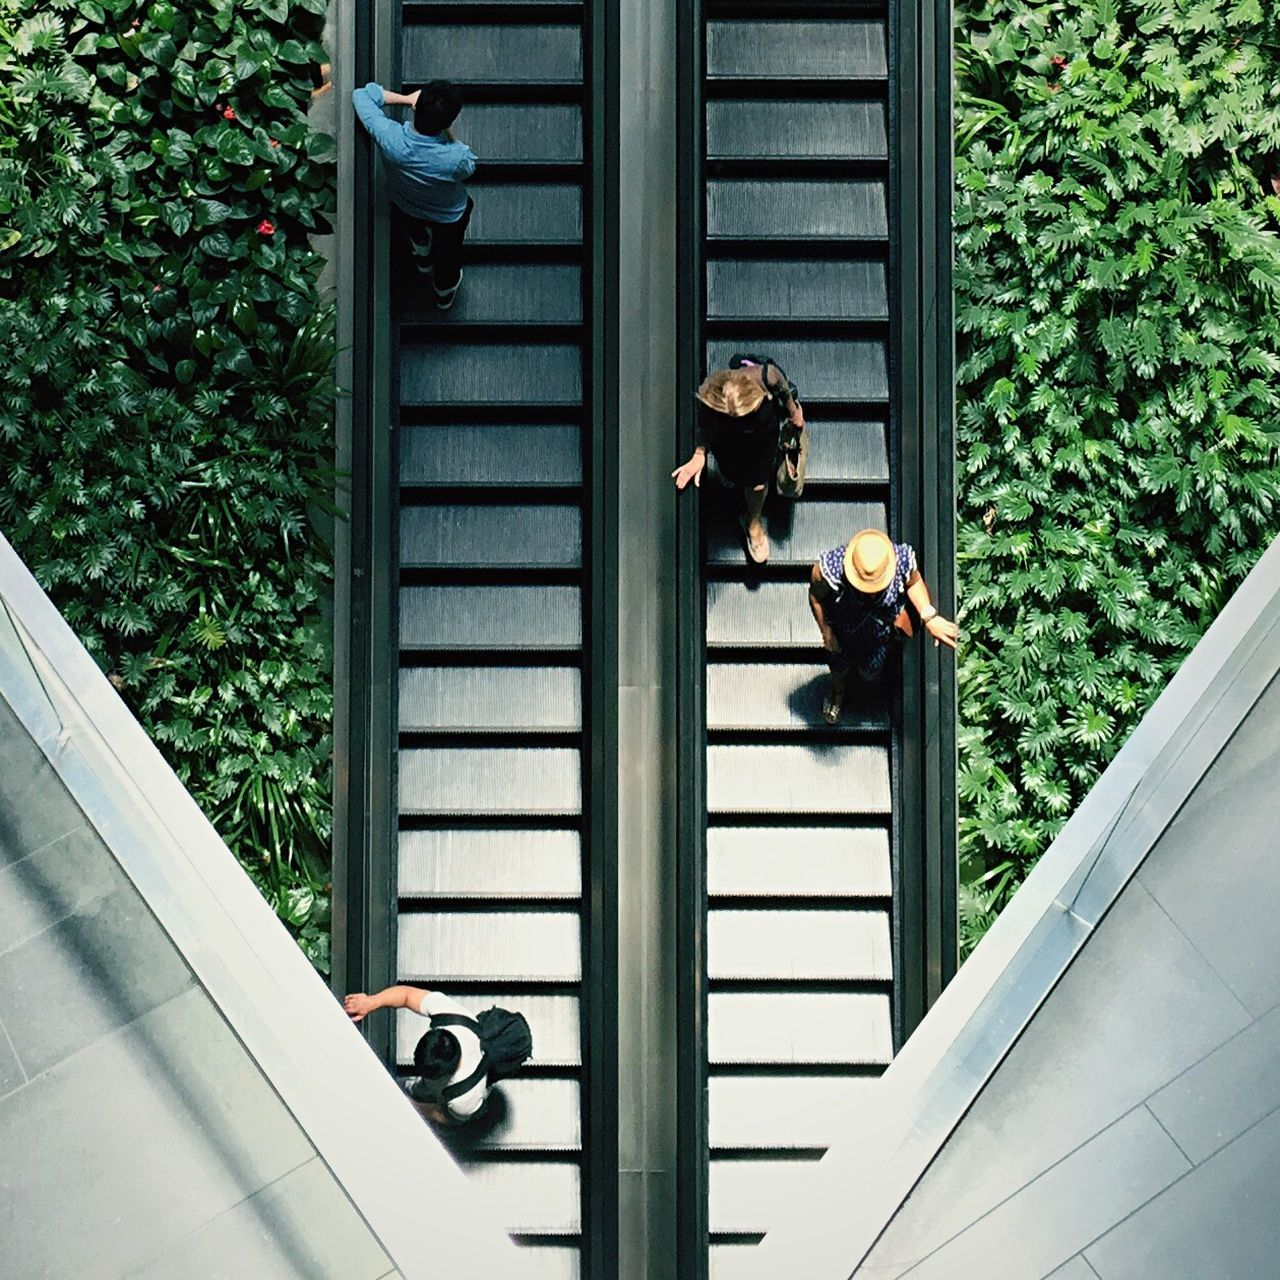 High angle view of people on escalator amidst plants